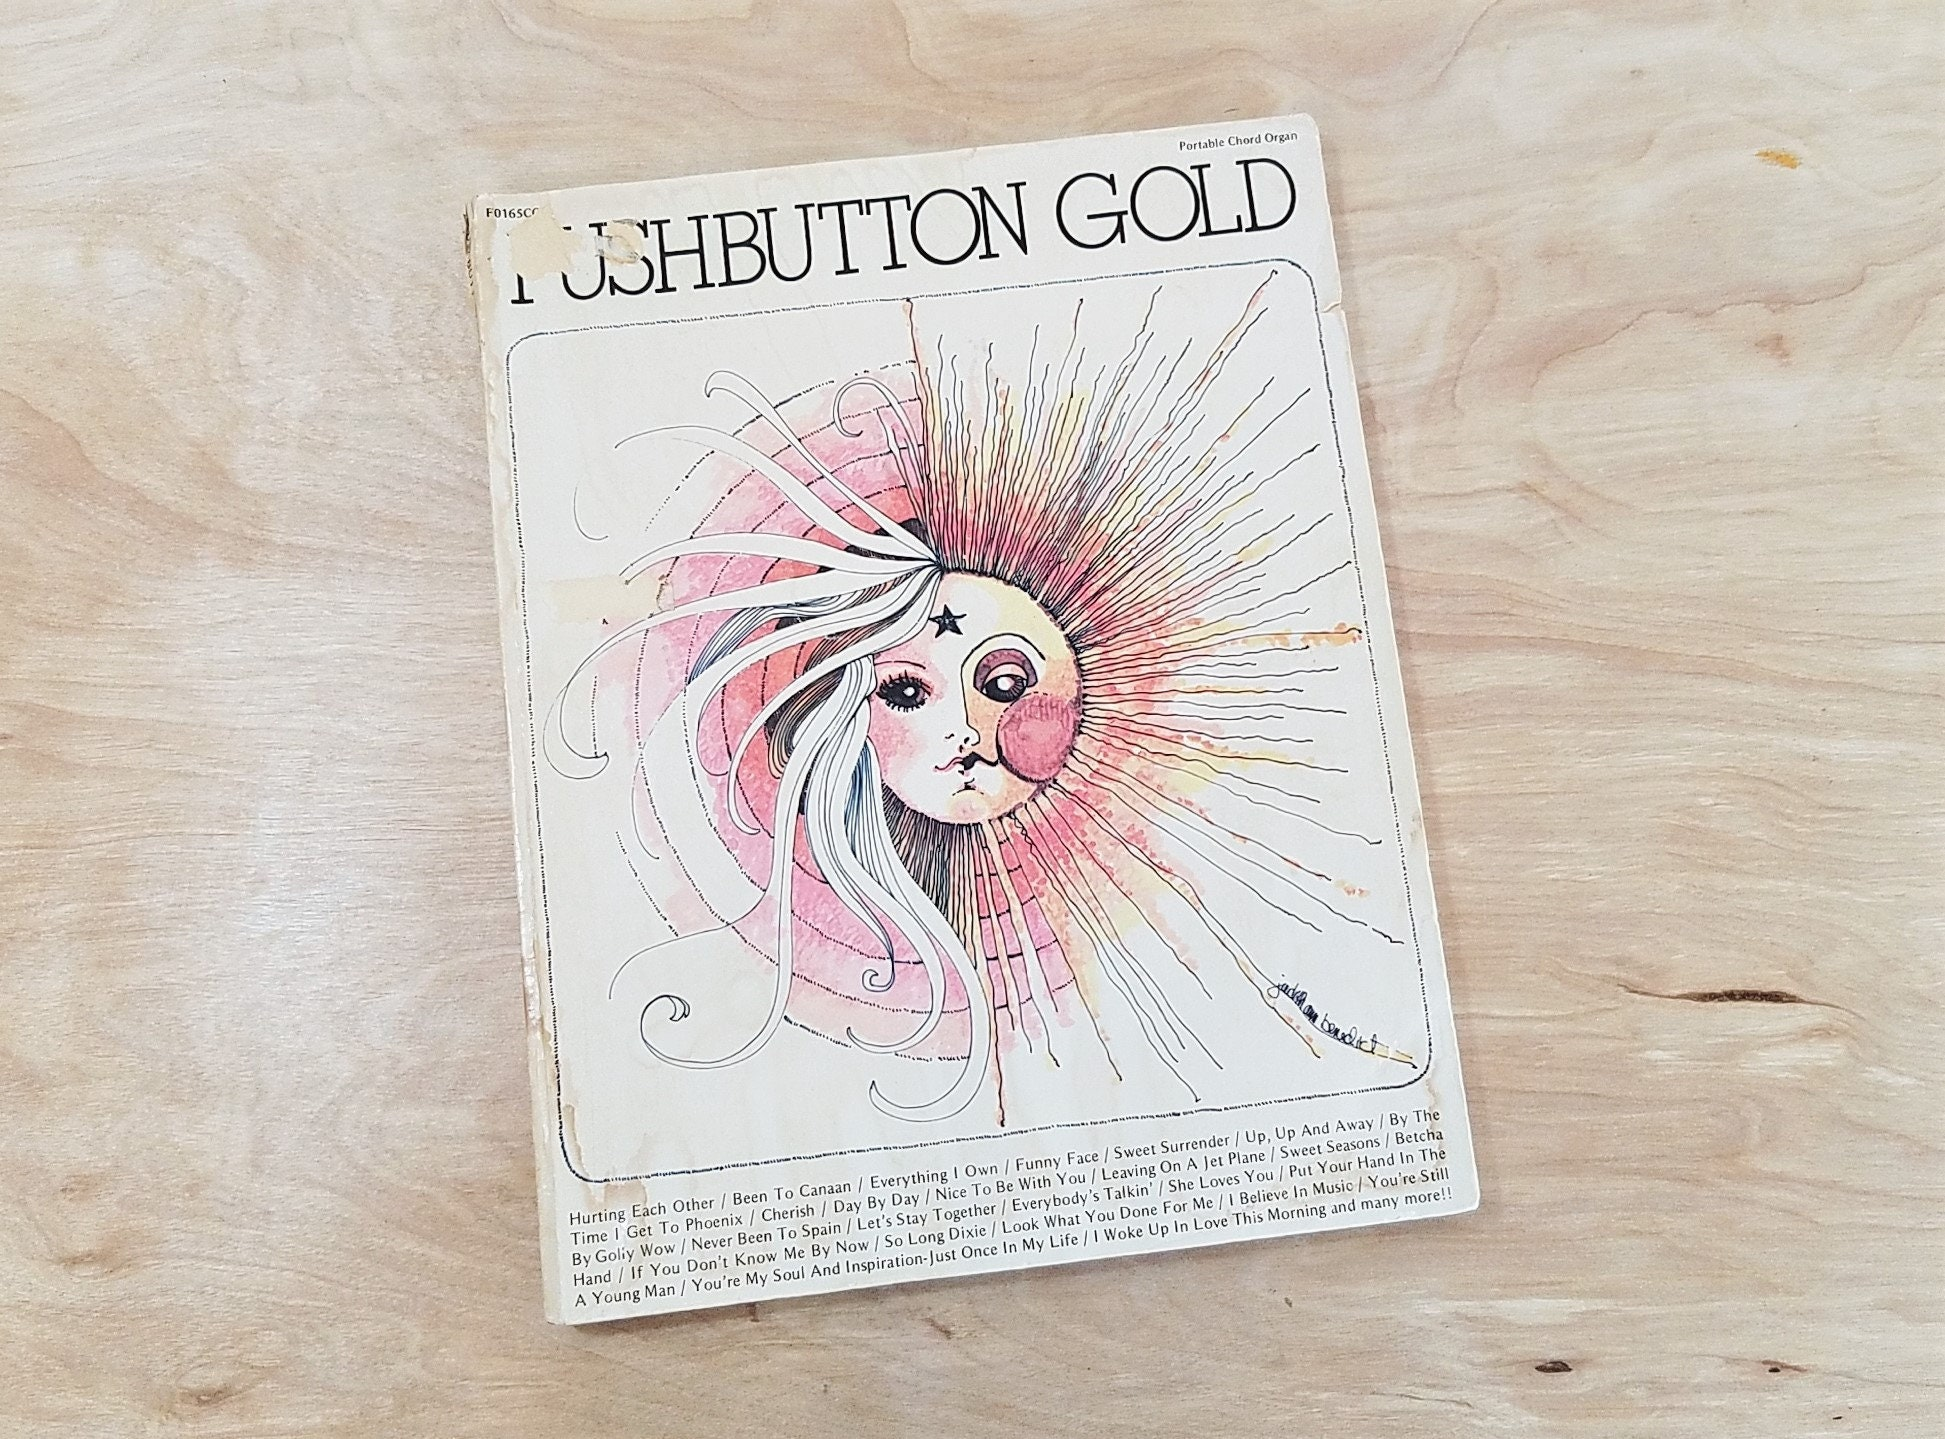 Vintage 1970's Music Book Pushbutton Gold Song Book 1970's Song Book 1970's  Sheet Music 1970's Hits Sing Along Carole King David Gates